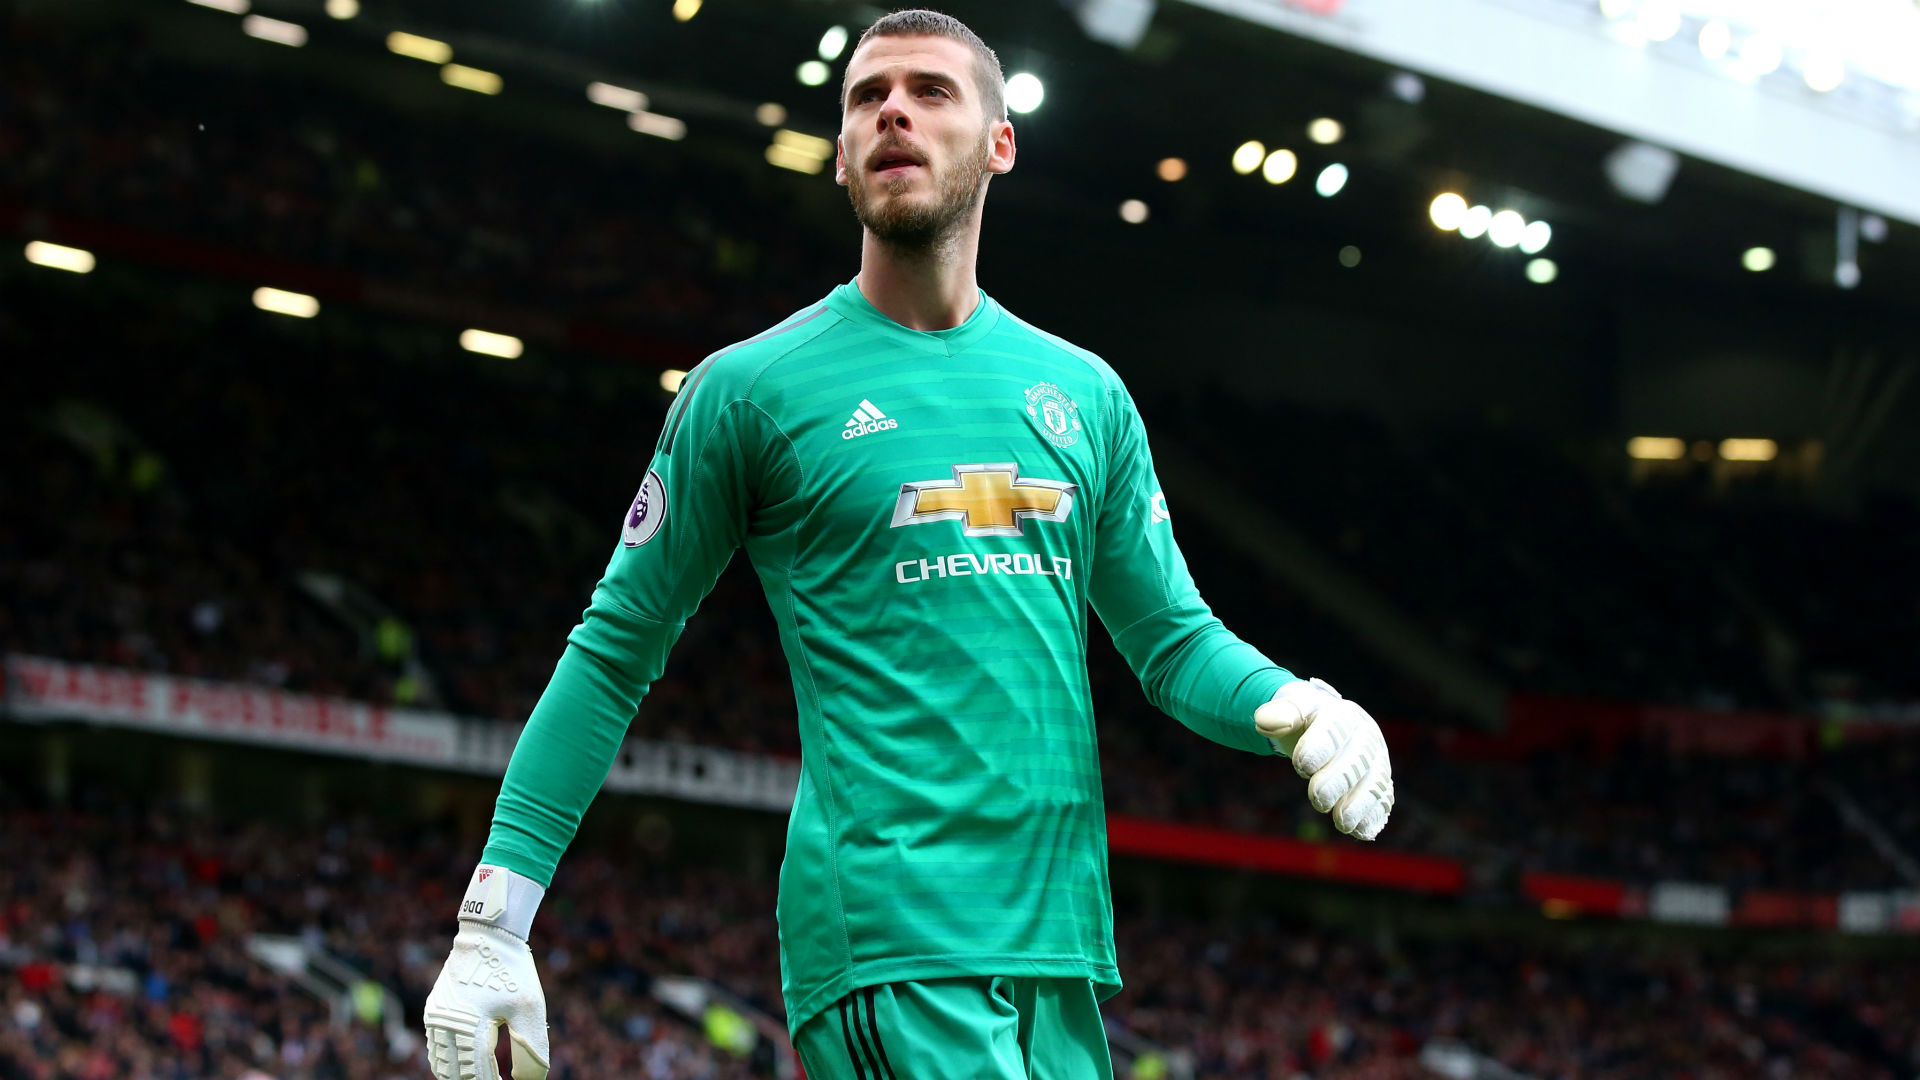 De Gea commits future to Manchester United until 2023